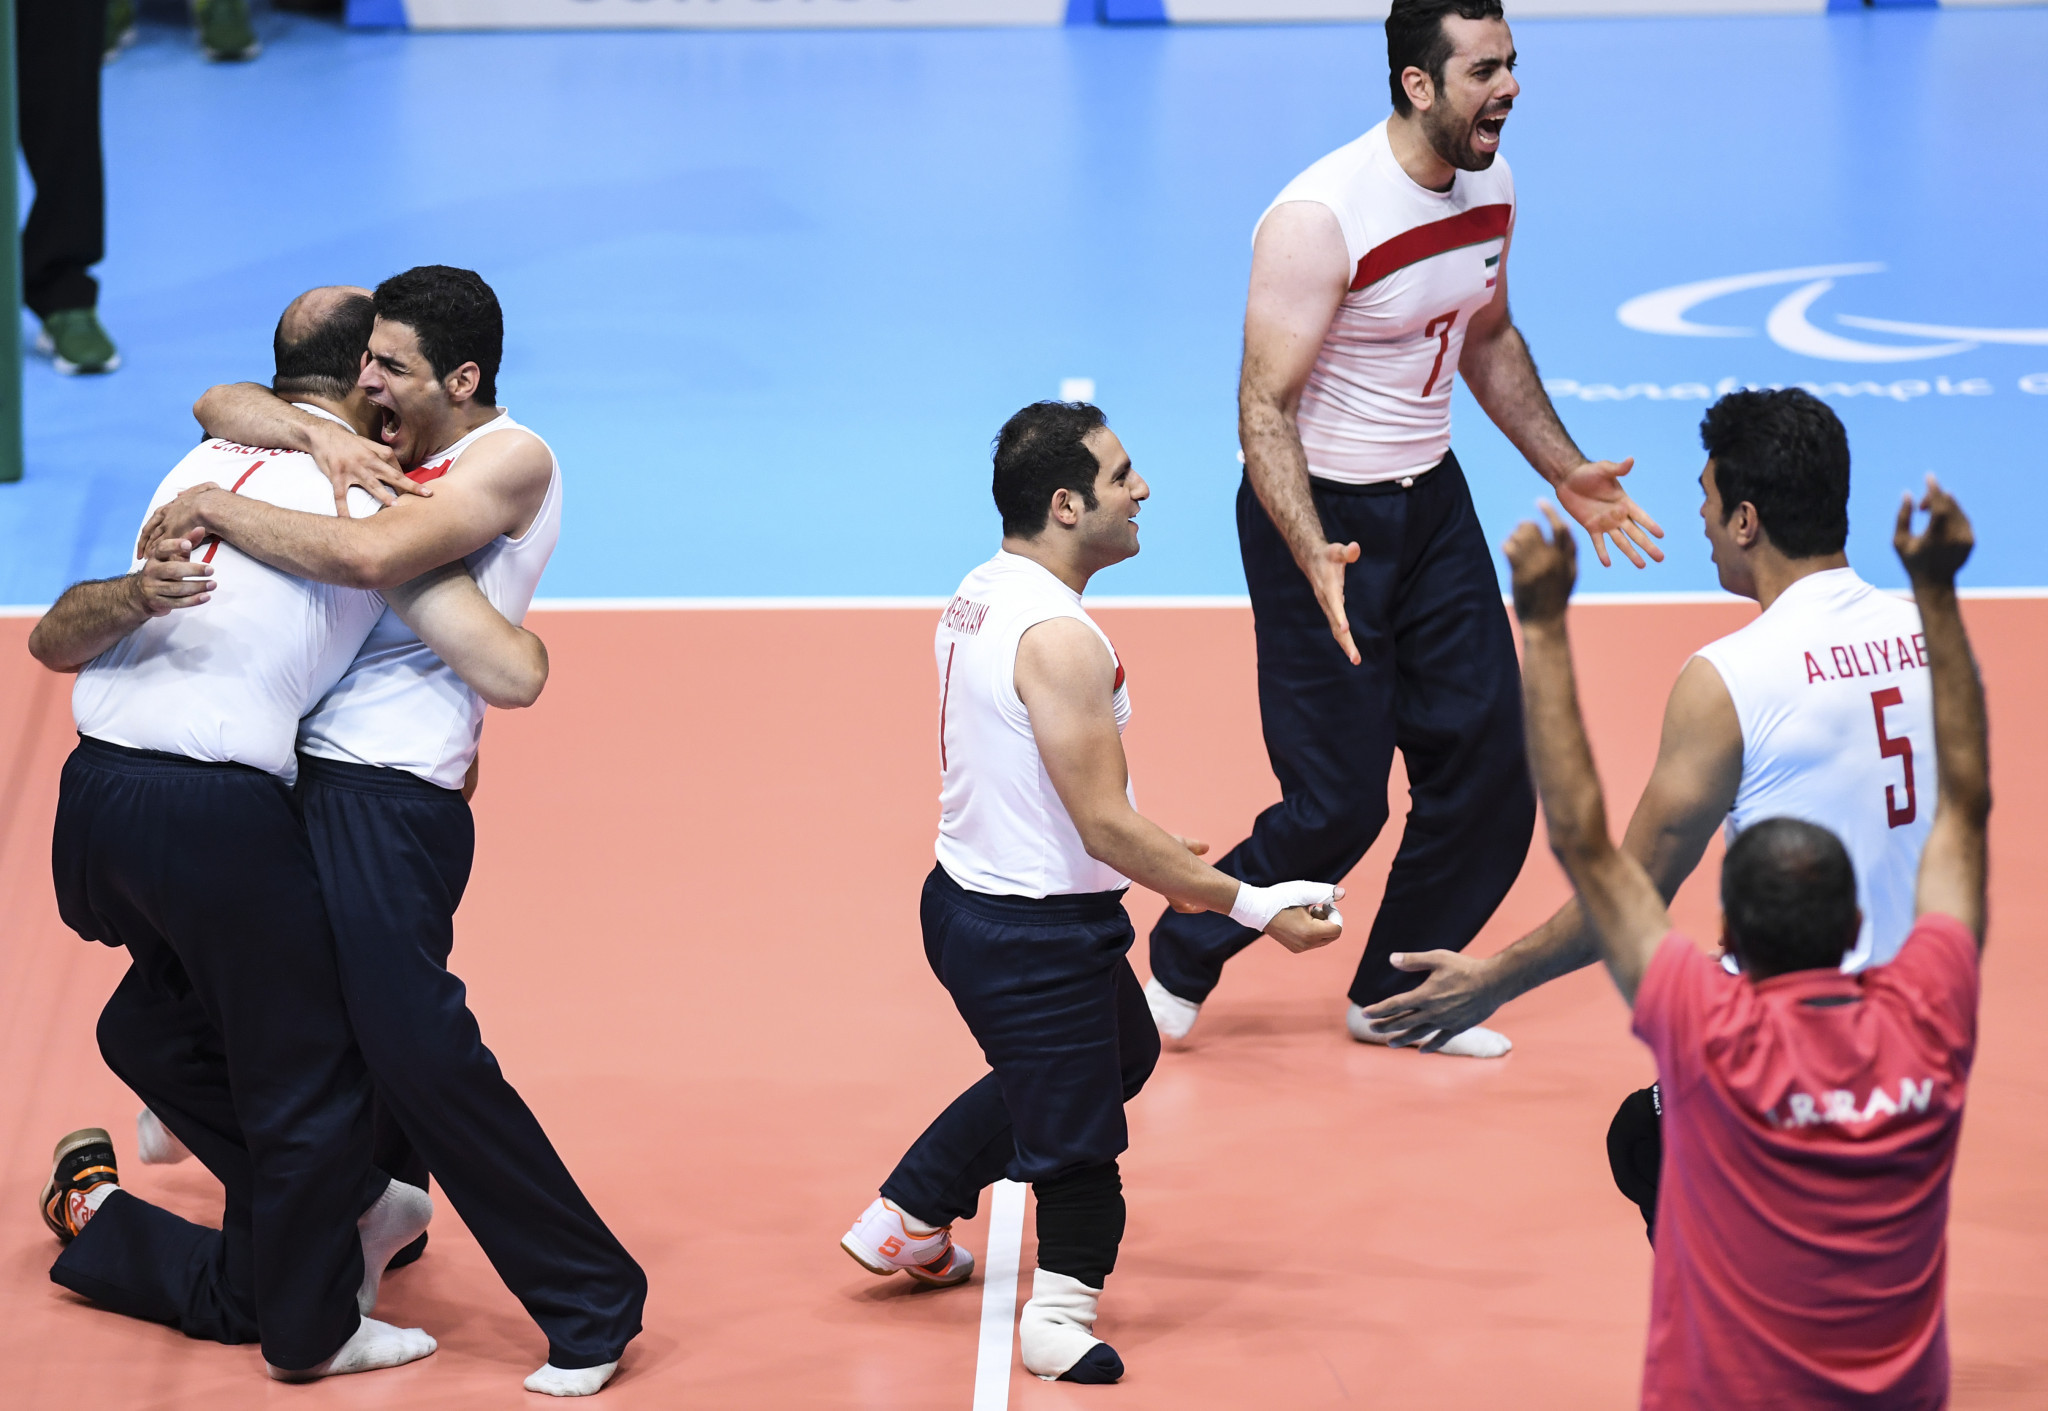 Hadi Rezaei is due to coach Iran's men's sitting volleyball team at Tokyo 2020 where they will hope to defend their Paralympic title ©Getty Images